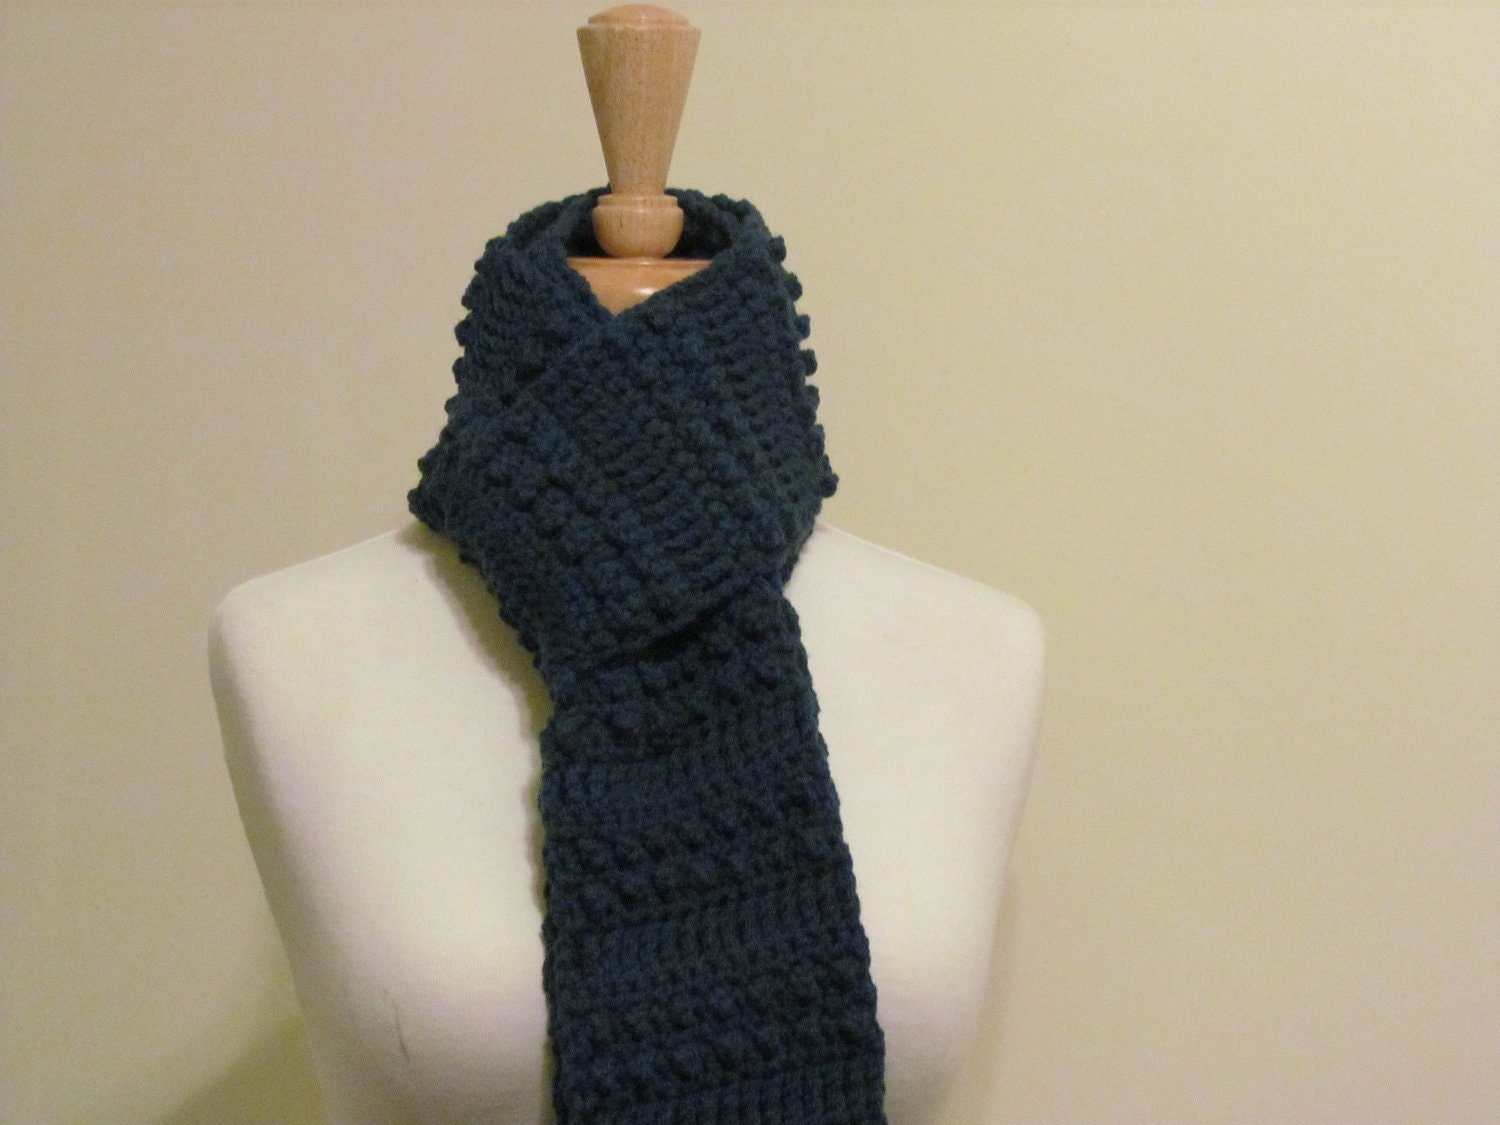 Crochet Mens Scarf : crochet blue scarf 6 x76 crochet long blue heather scarf for Crochet ...